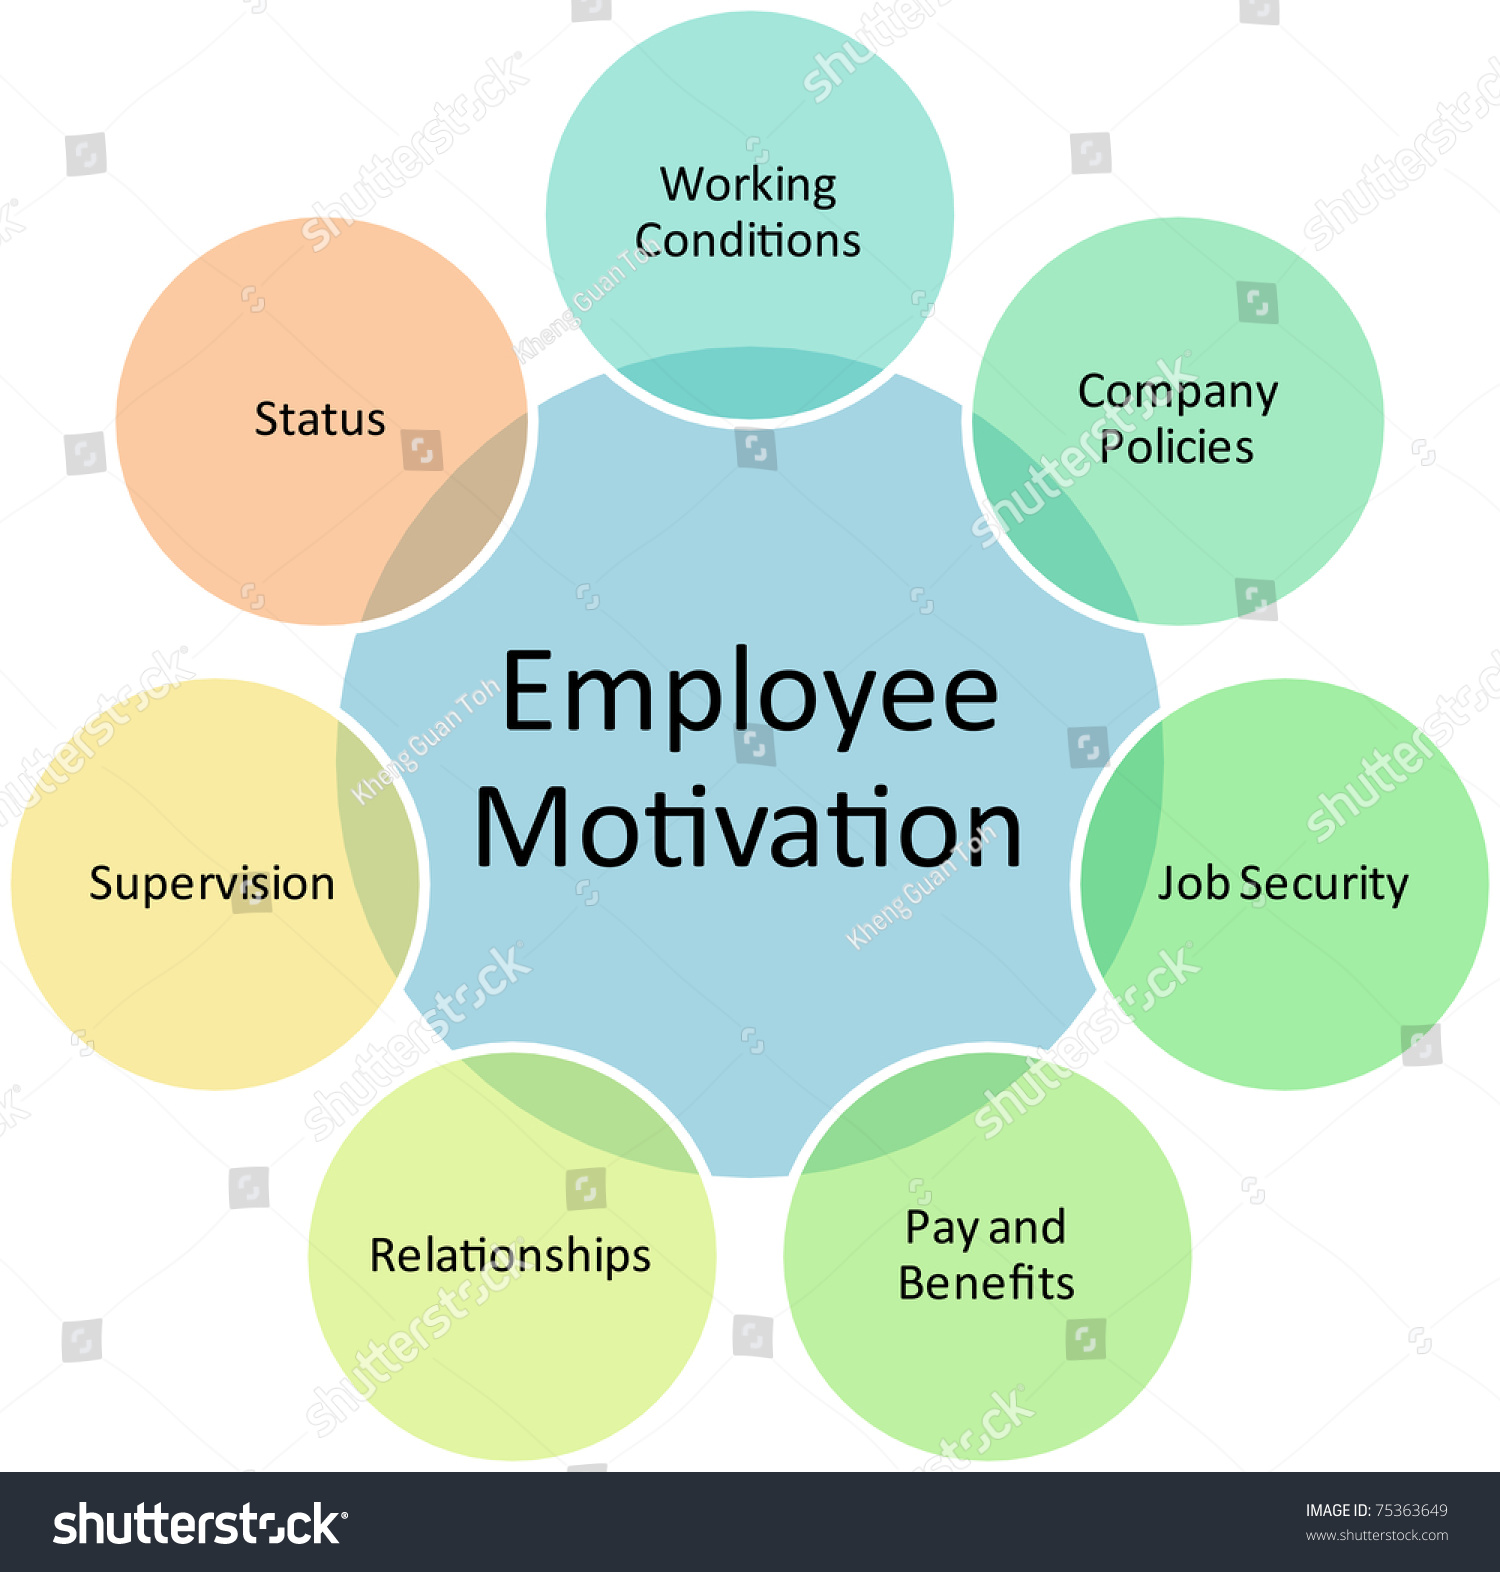 impact of employee motivation strategies on customer service Motivation is necessary as human nature needs some sort of inducement, encouragement or incentive in order to get better performance motivation of employee's offers may benefits to the organisation and also to the employees this suggests the importance of motivating employees motivation acts as a technique for improving the performance of employees working at different levels.